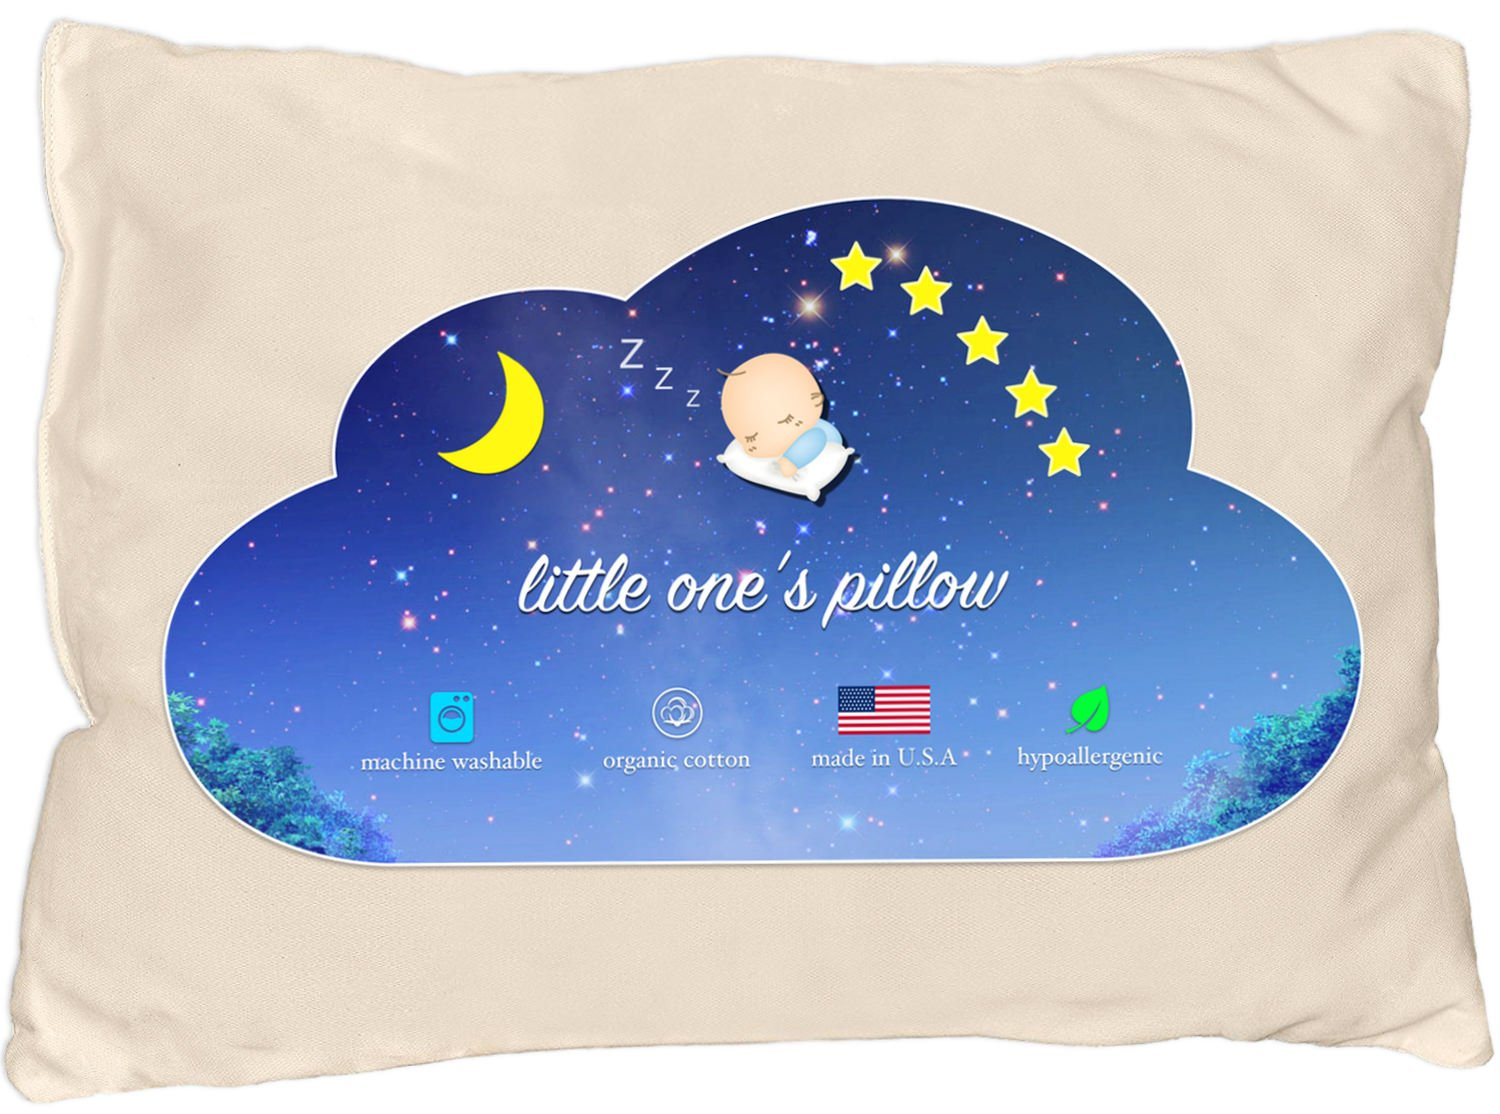 Toddler Pillow - Delicate Organic Cotton Shell - Soft and Supportive Pillows for Kids, Hand-Crafted for Better Naps and a Restful, Soothing Sleep Every Time! (13 in x 18 in) Little One' s Pillow M7-ARK